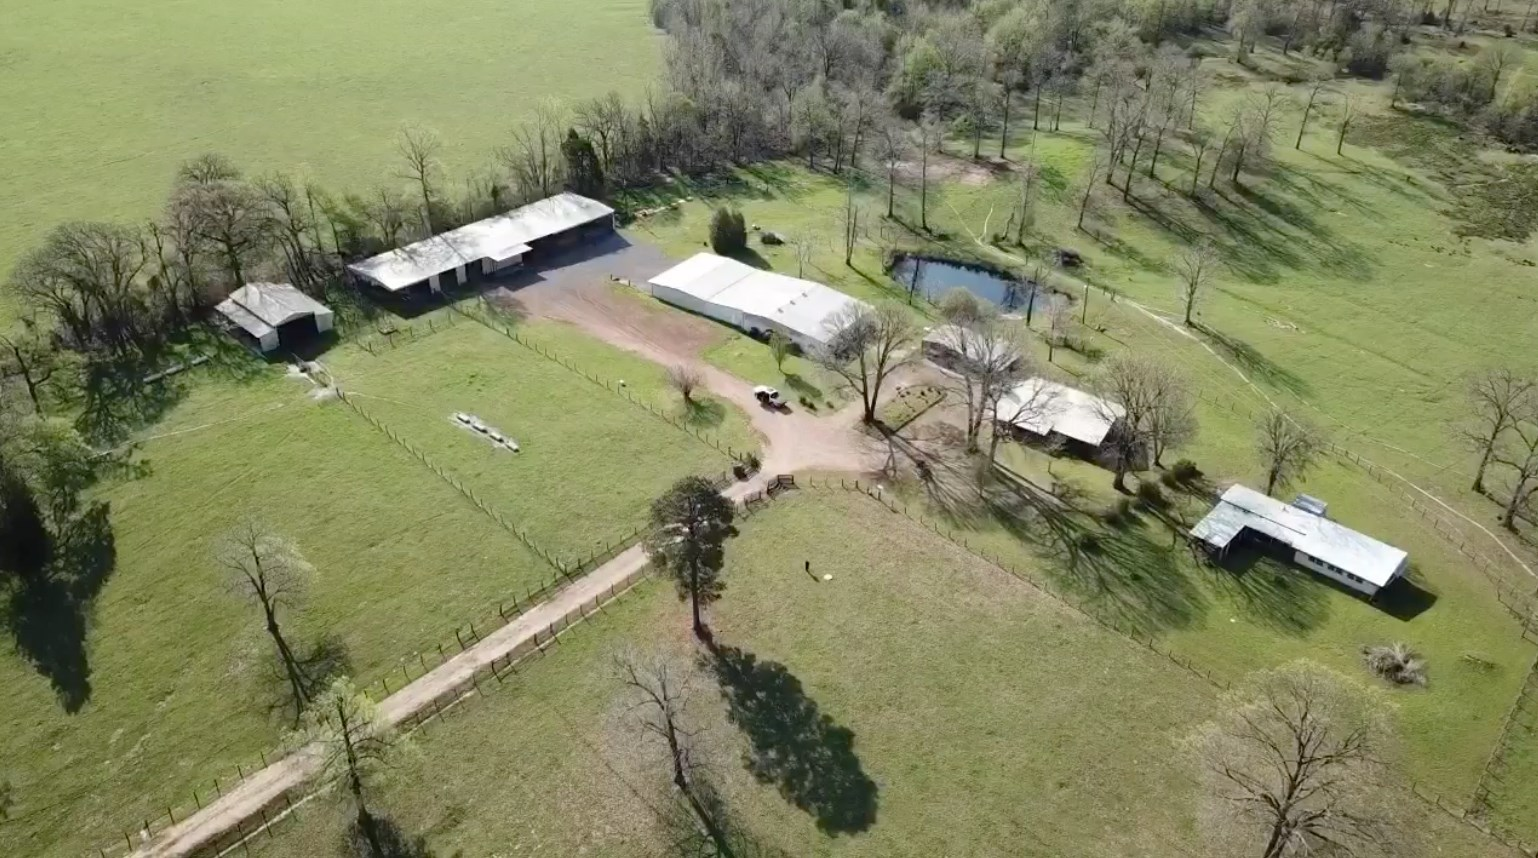 47 ACRE EAST TEXAS RANCH - WINNSBORO, TX - WOOD COUNTY